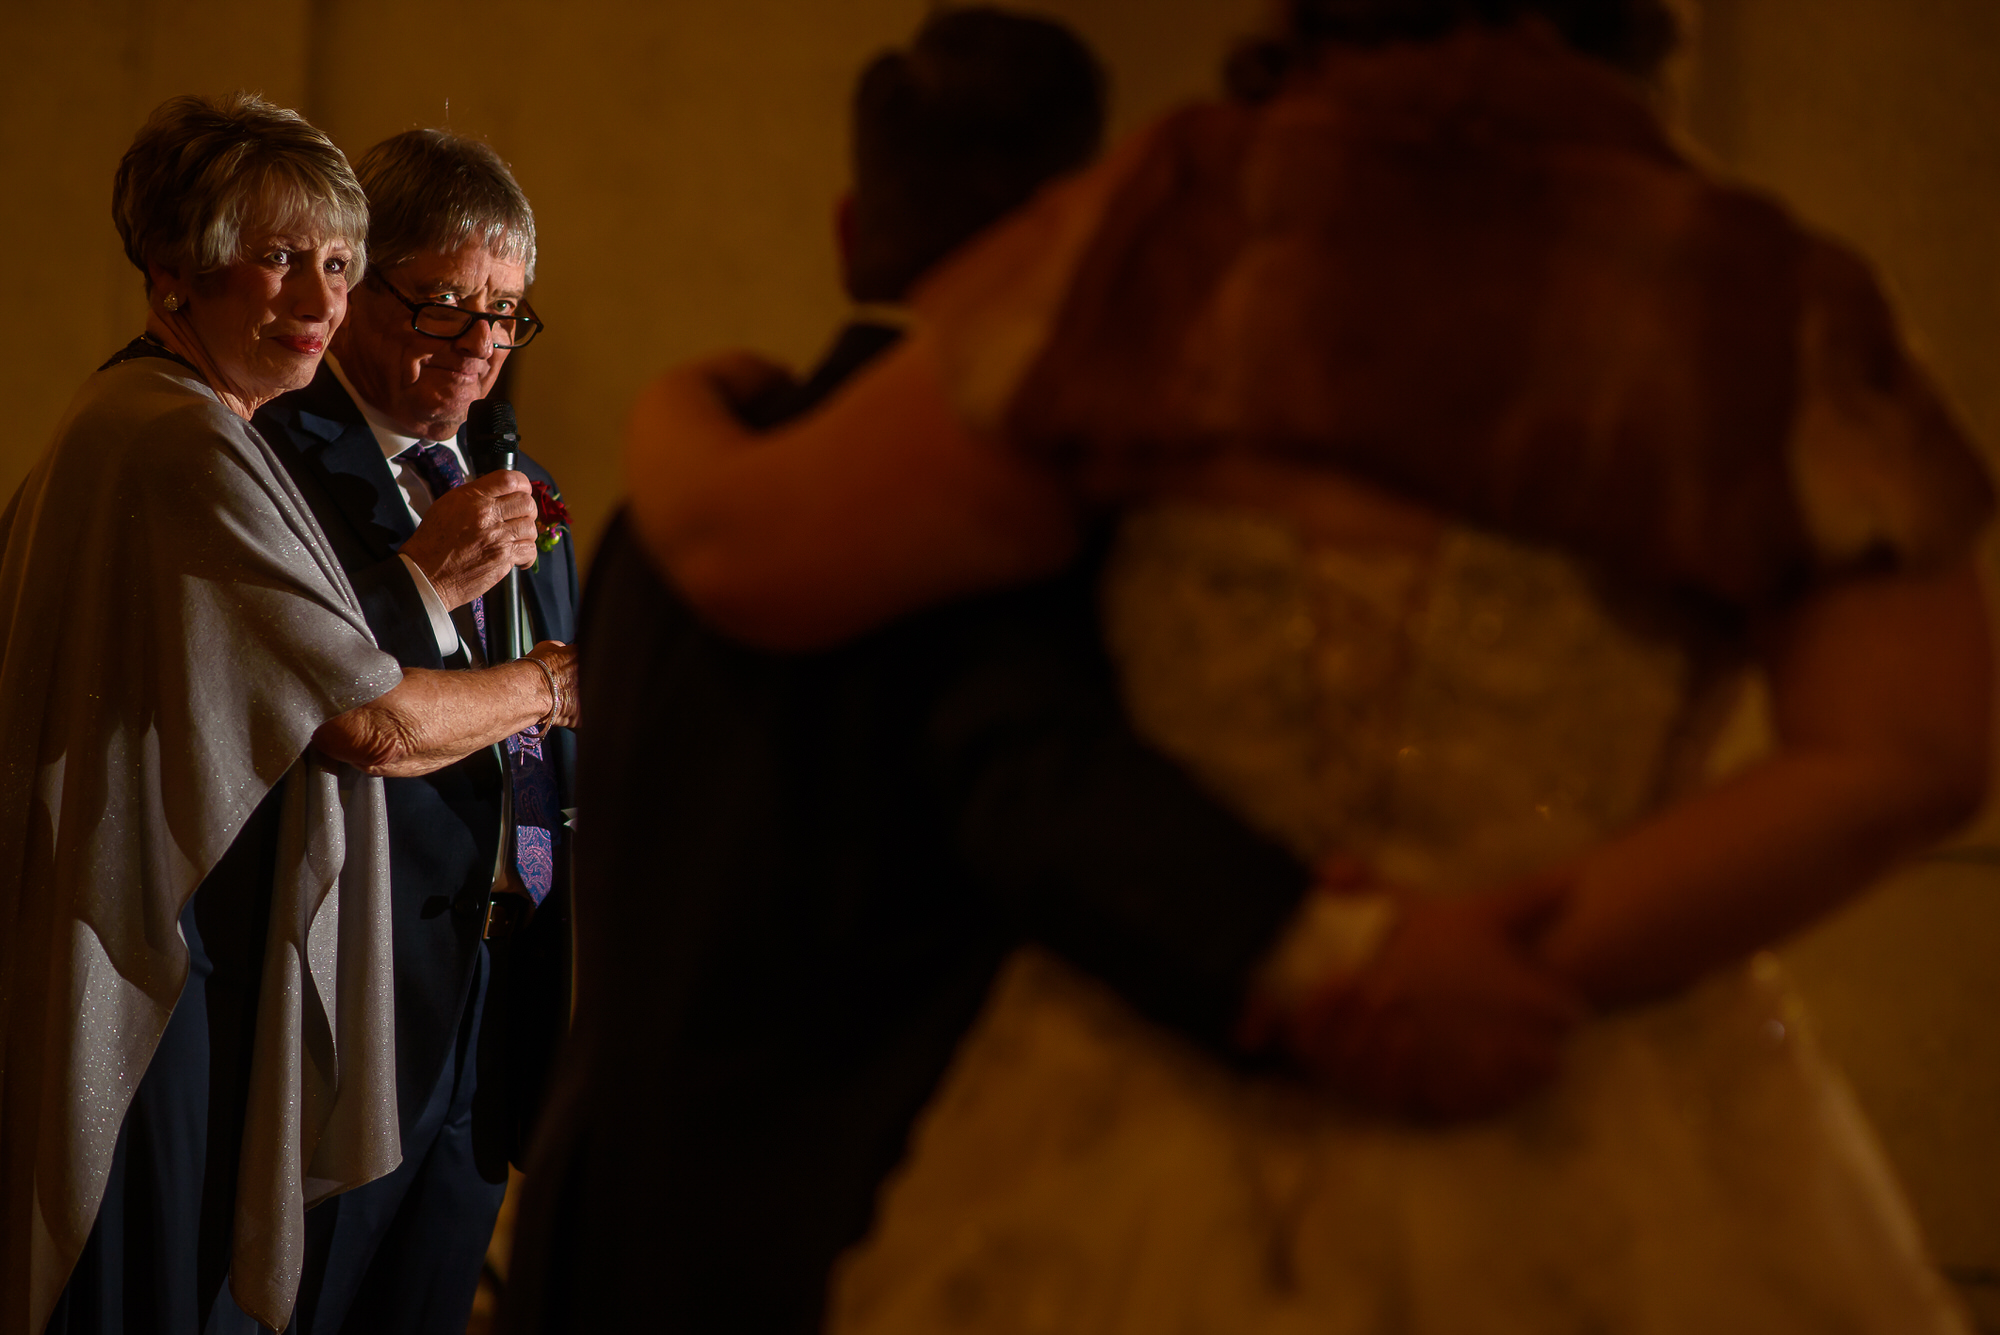 Father looks lovingly at couple during toast photo by Tyler Wirken - Kansas City